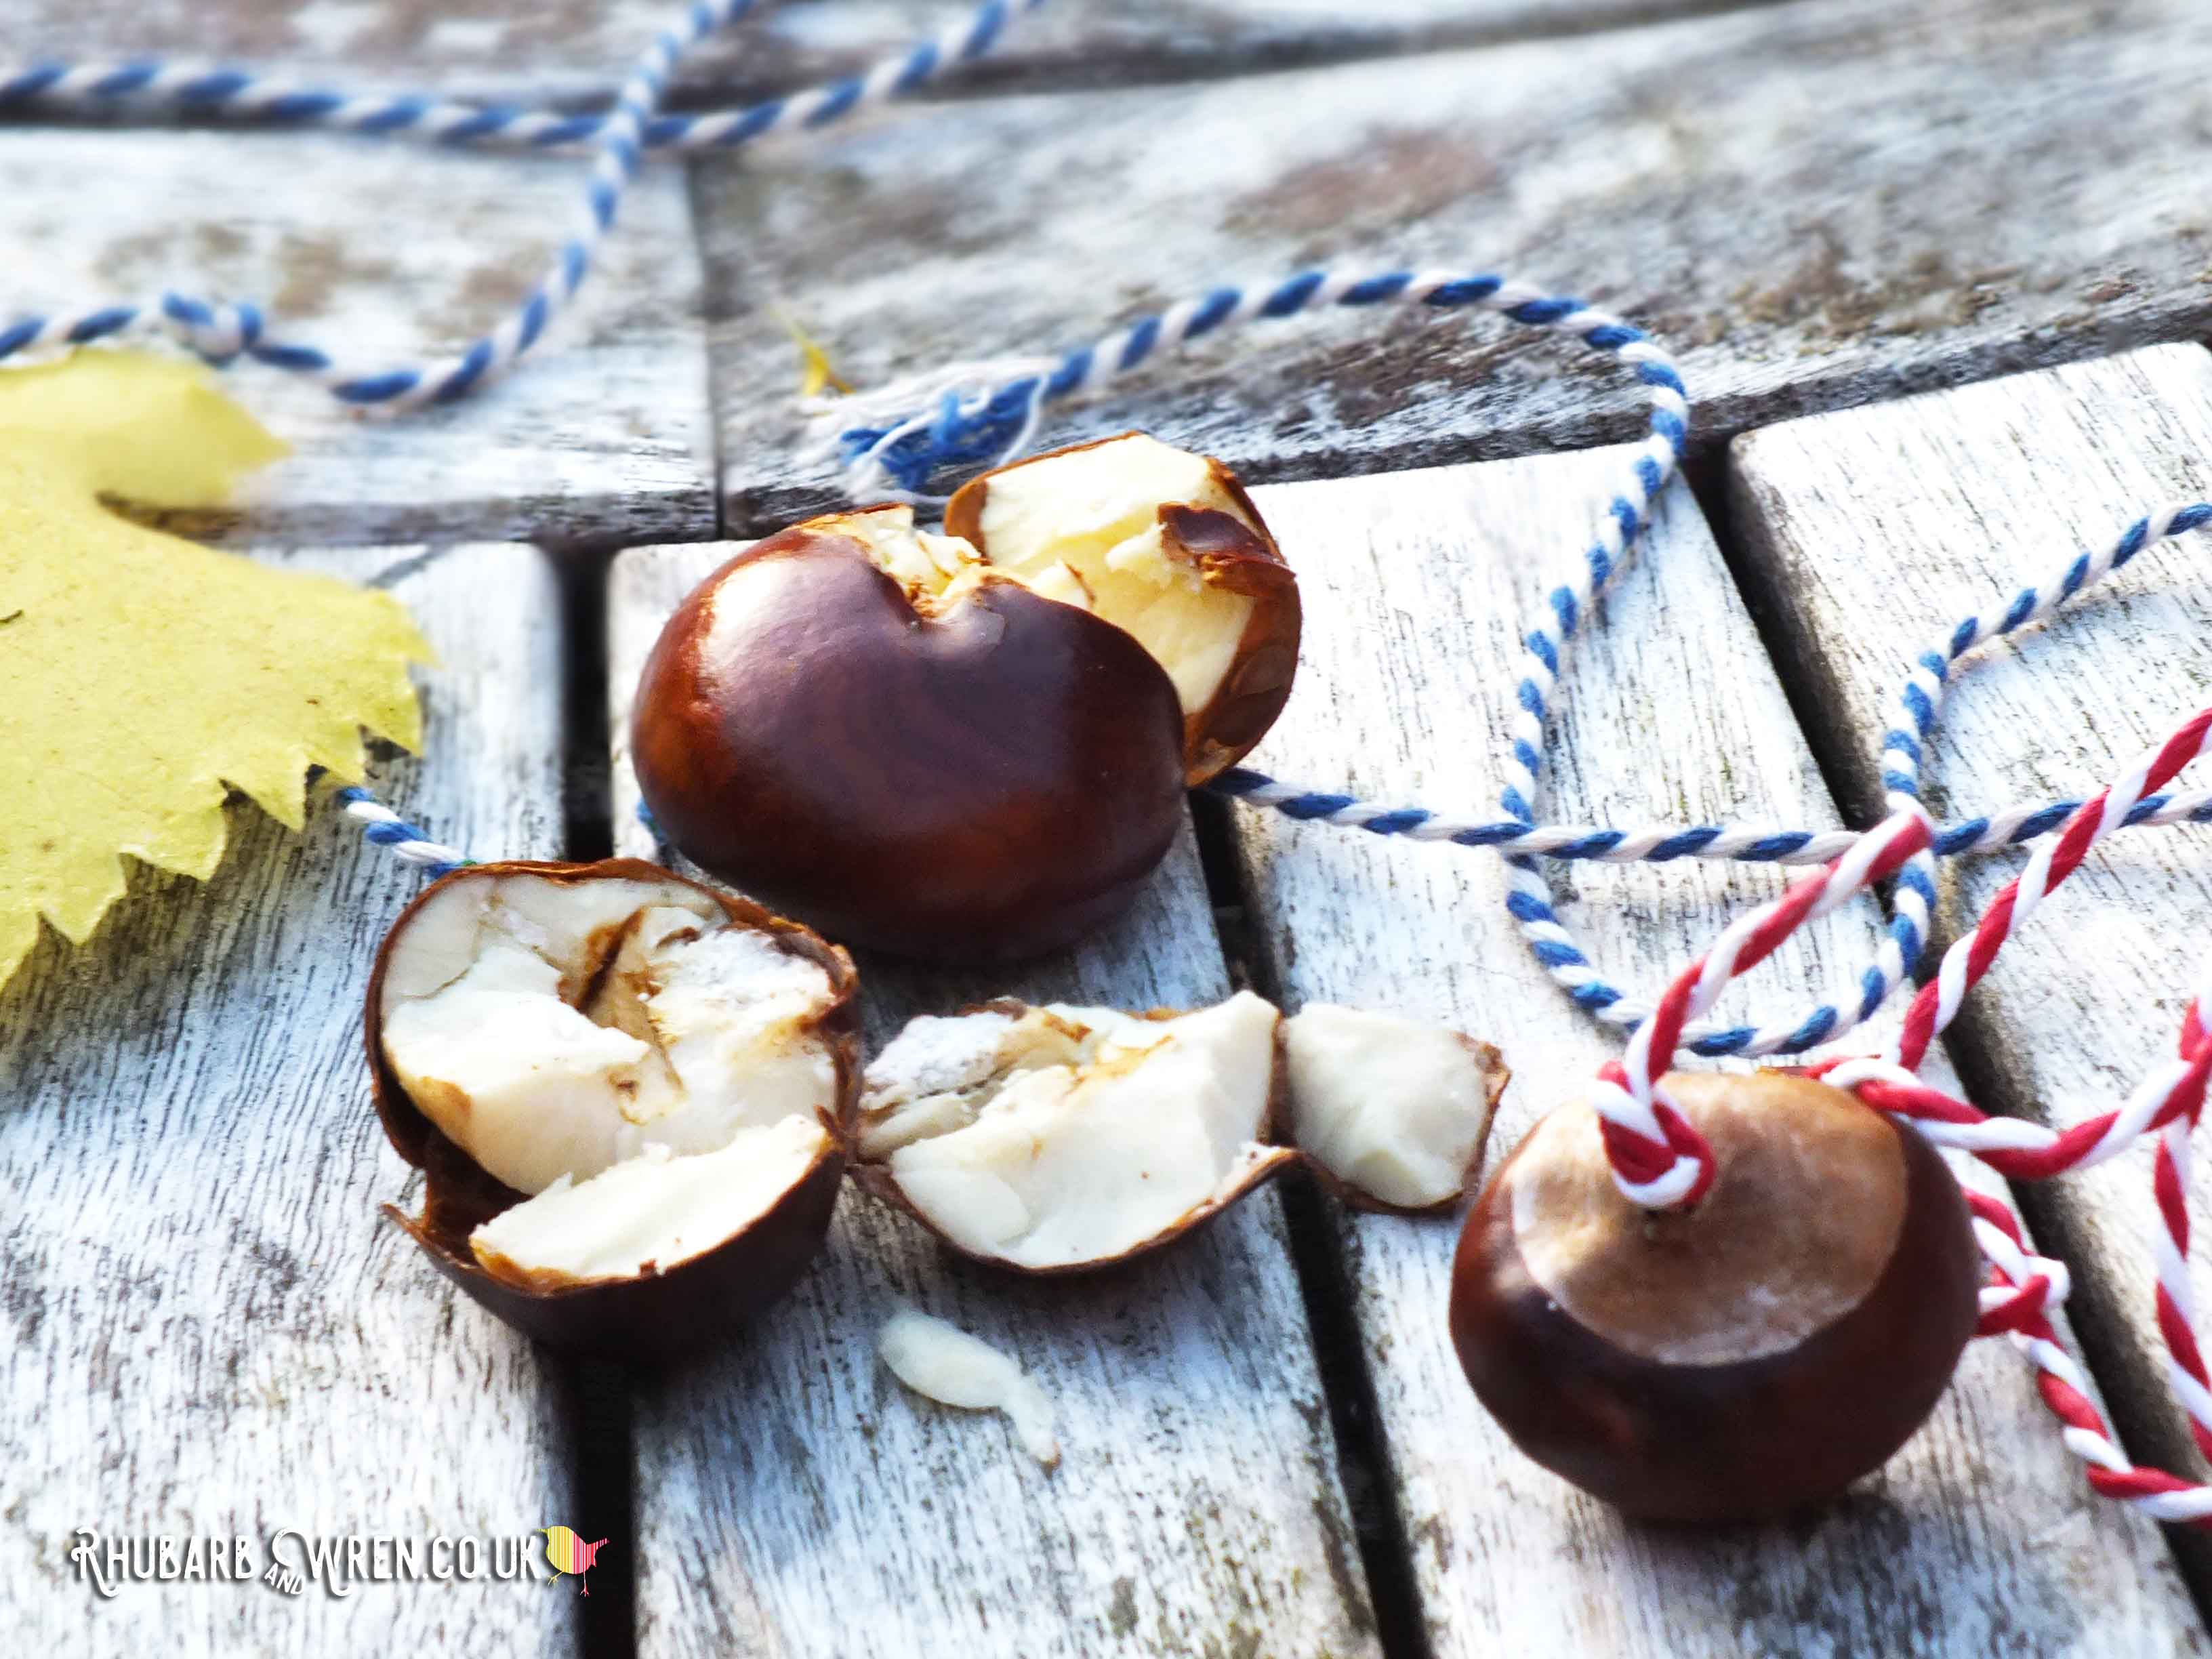 A smashed conker and a whole conker on string